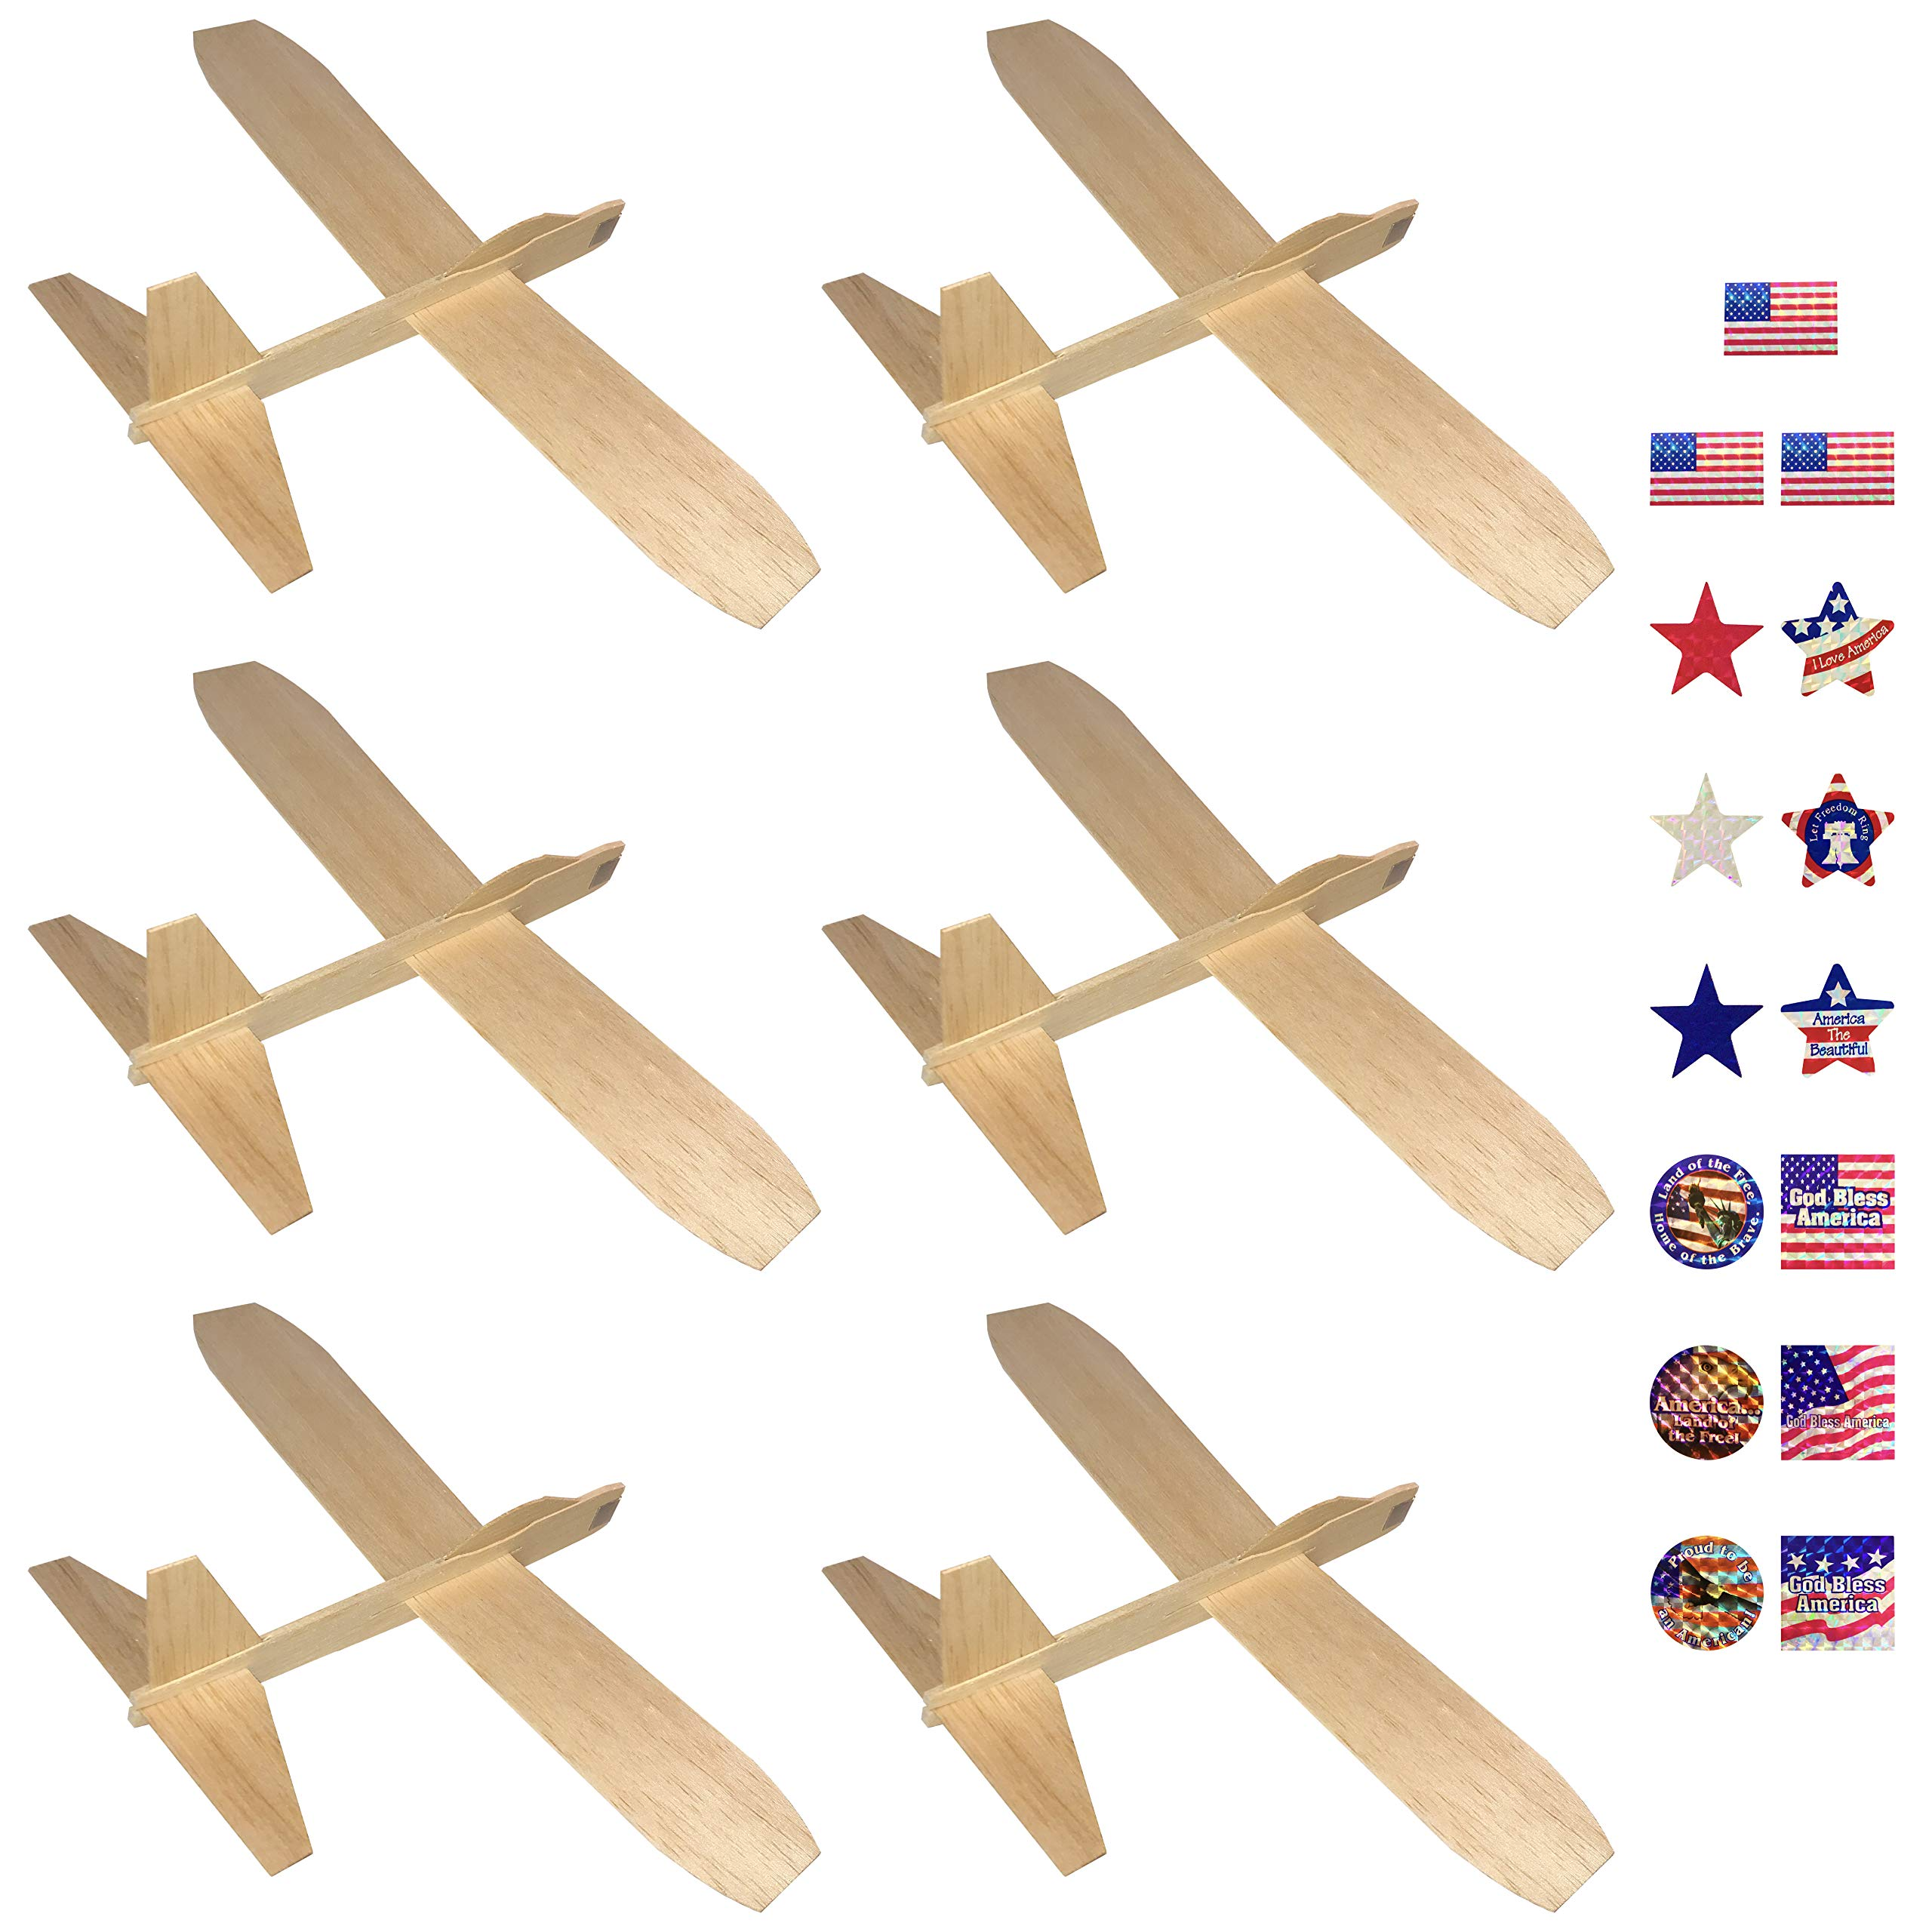 Guillows Balsa Wood Gliders Jetfire | Wooden Model Airplane Construction Kits | 12-Inch Customizable Unfinished Blank DIY Flying Toy Planes | 6-Pack with 15 Prismatic Patriotic Stickers from KYGON by KYGON Products